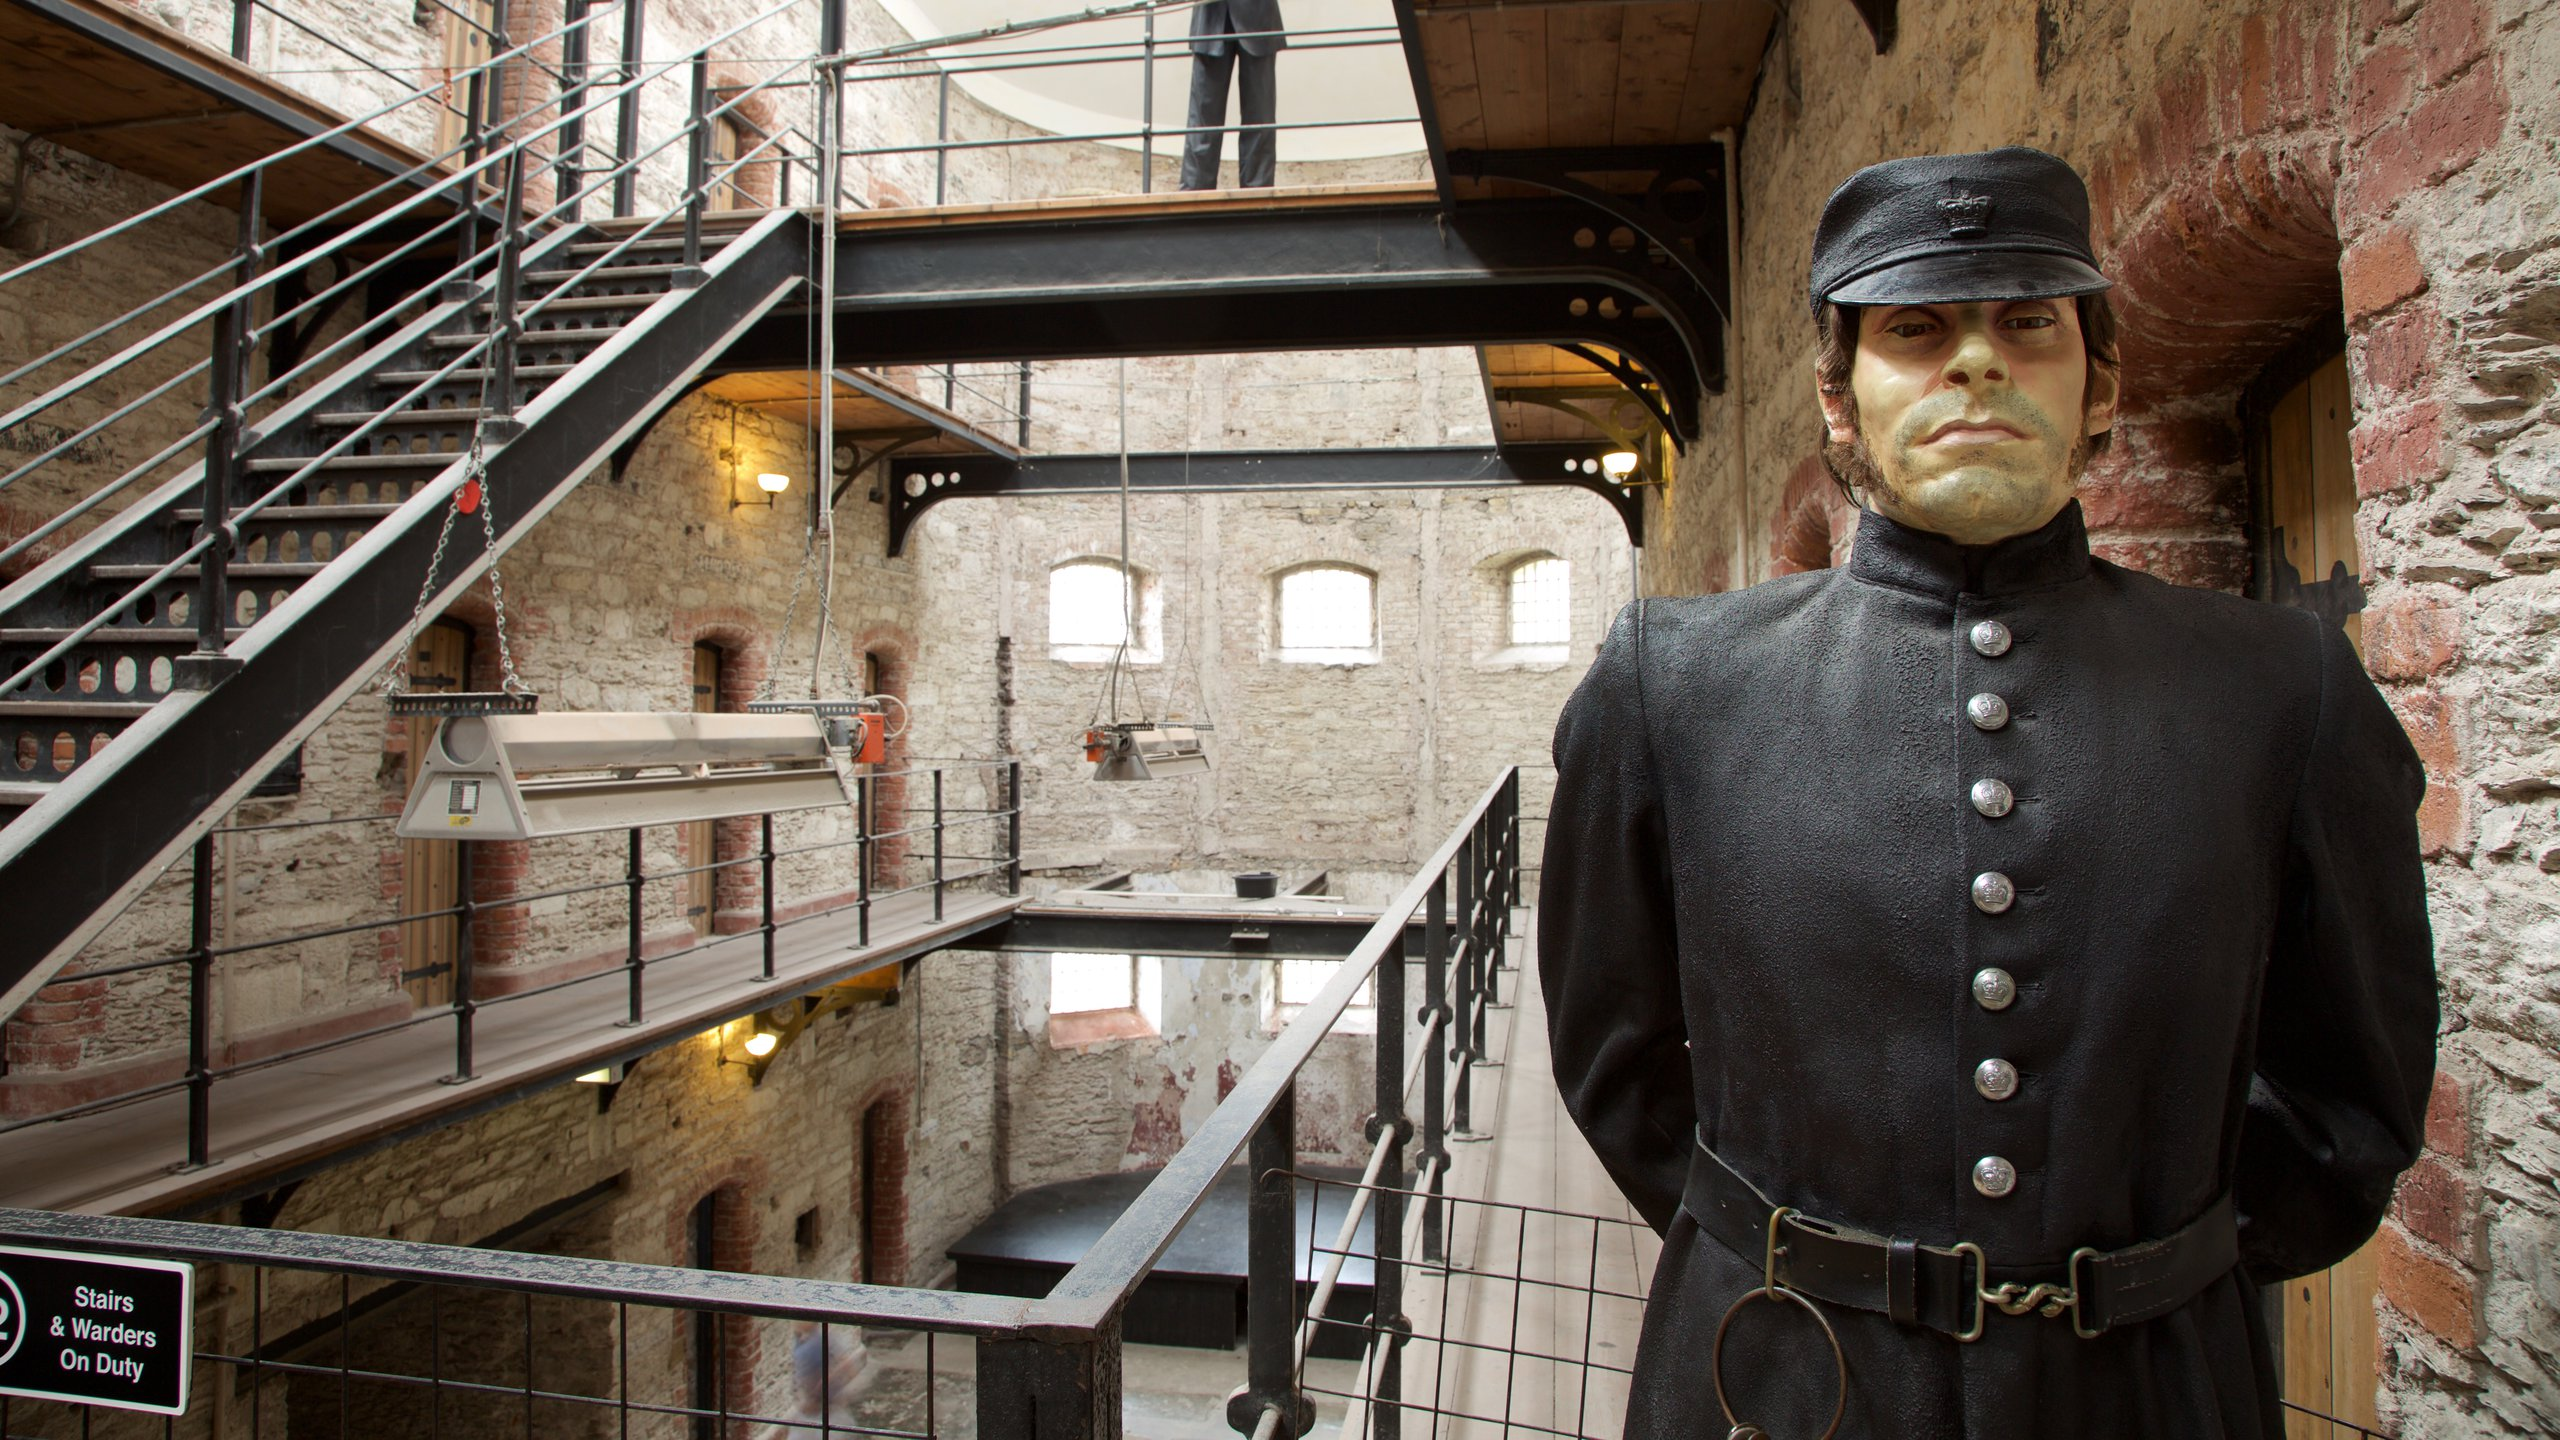 Experience the harshness of Irish penal life in the 19th century as you wander amid the cells of this architecturally impressive former prison.